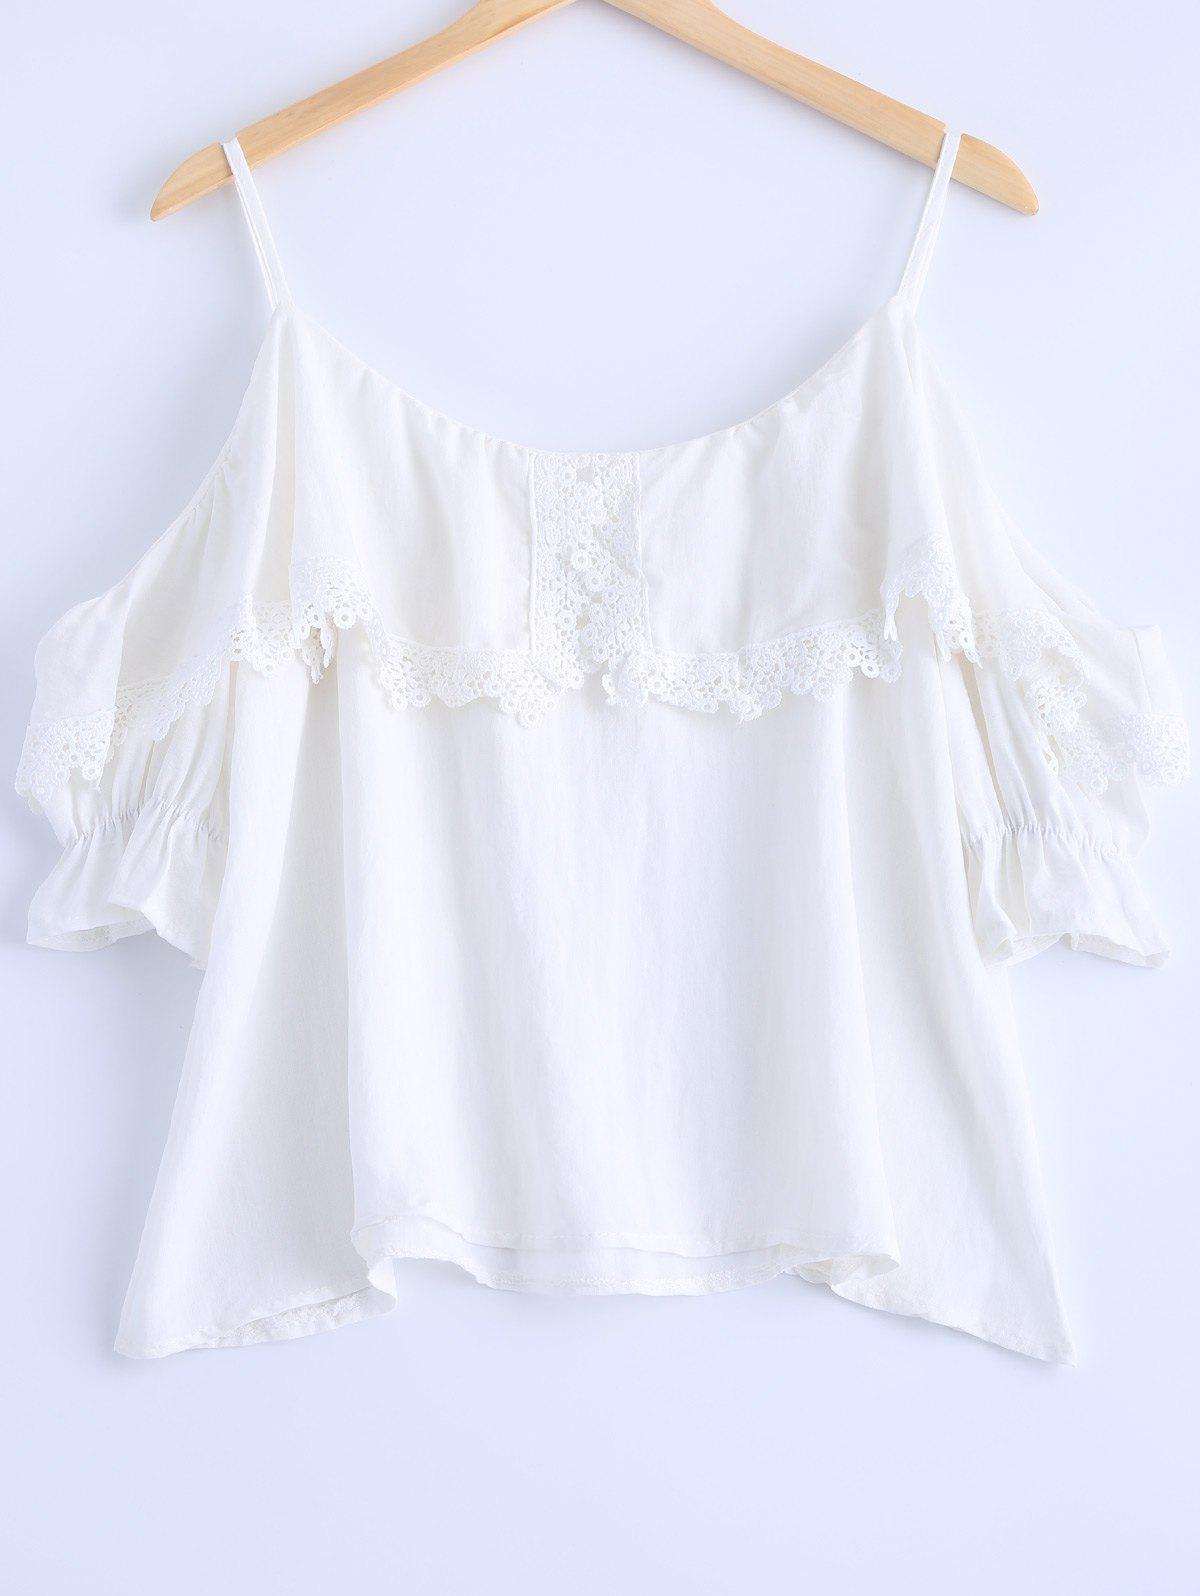 Stylish Women's Cold Shoulder Lace Embellished Short Sleeves Top